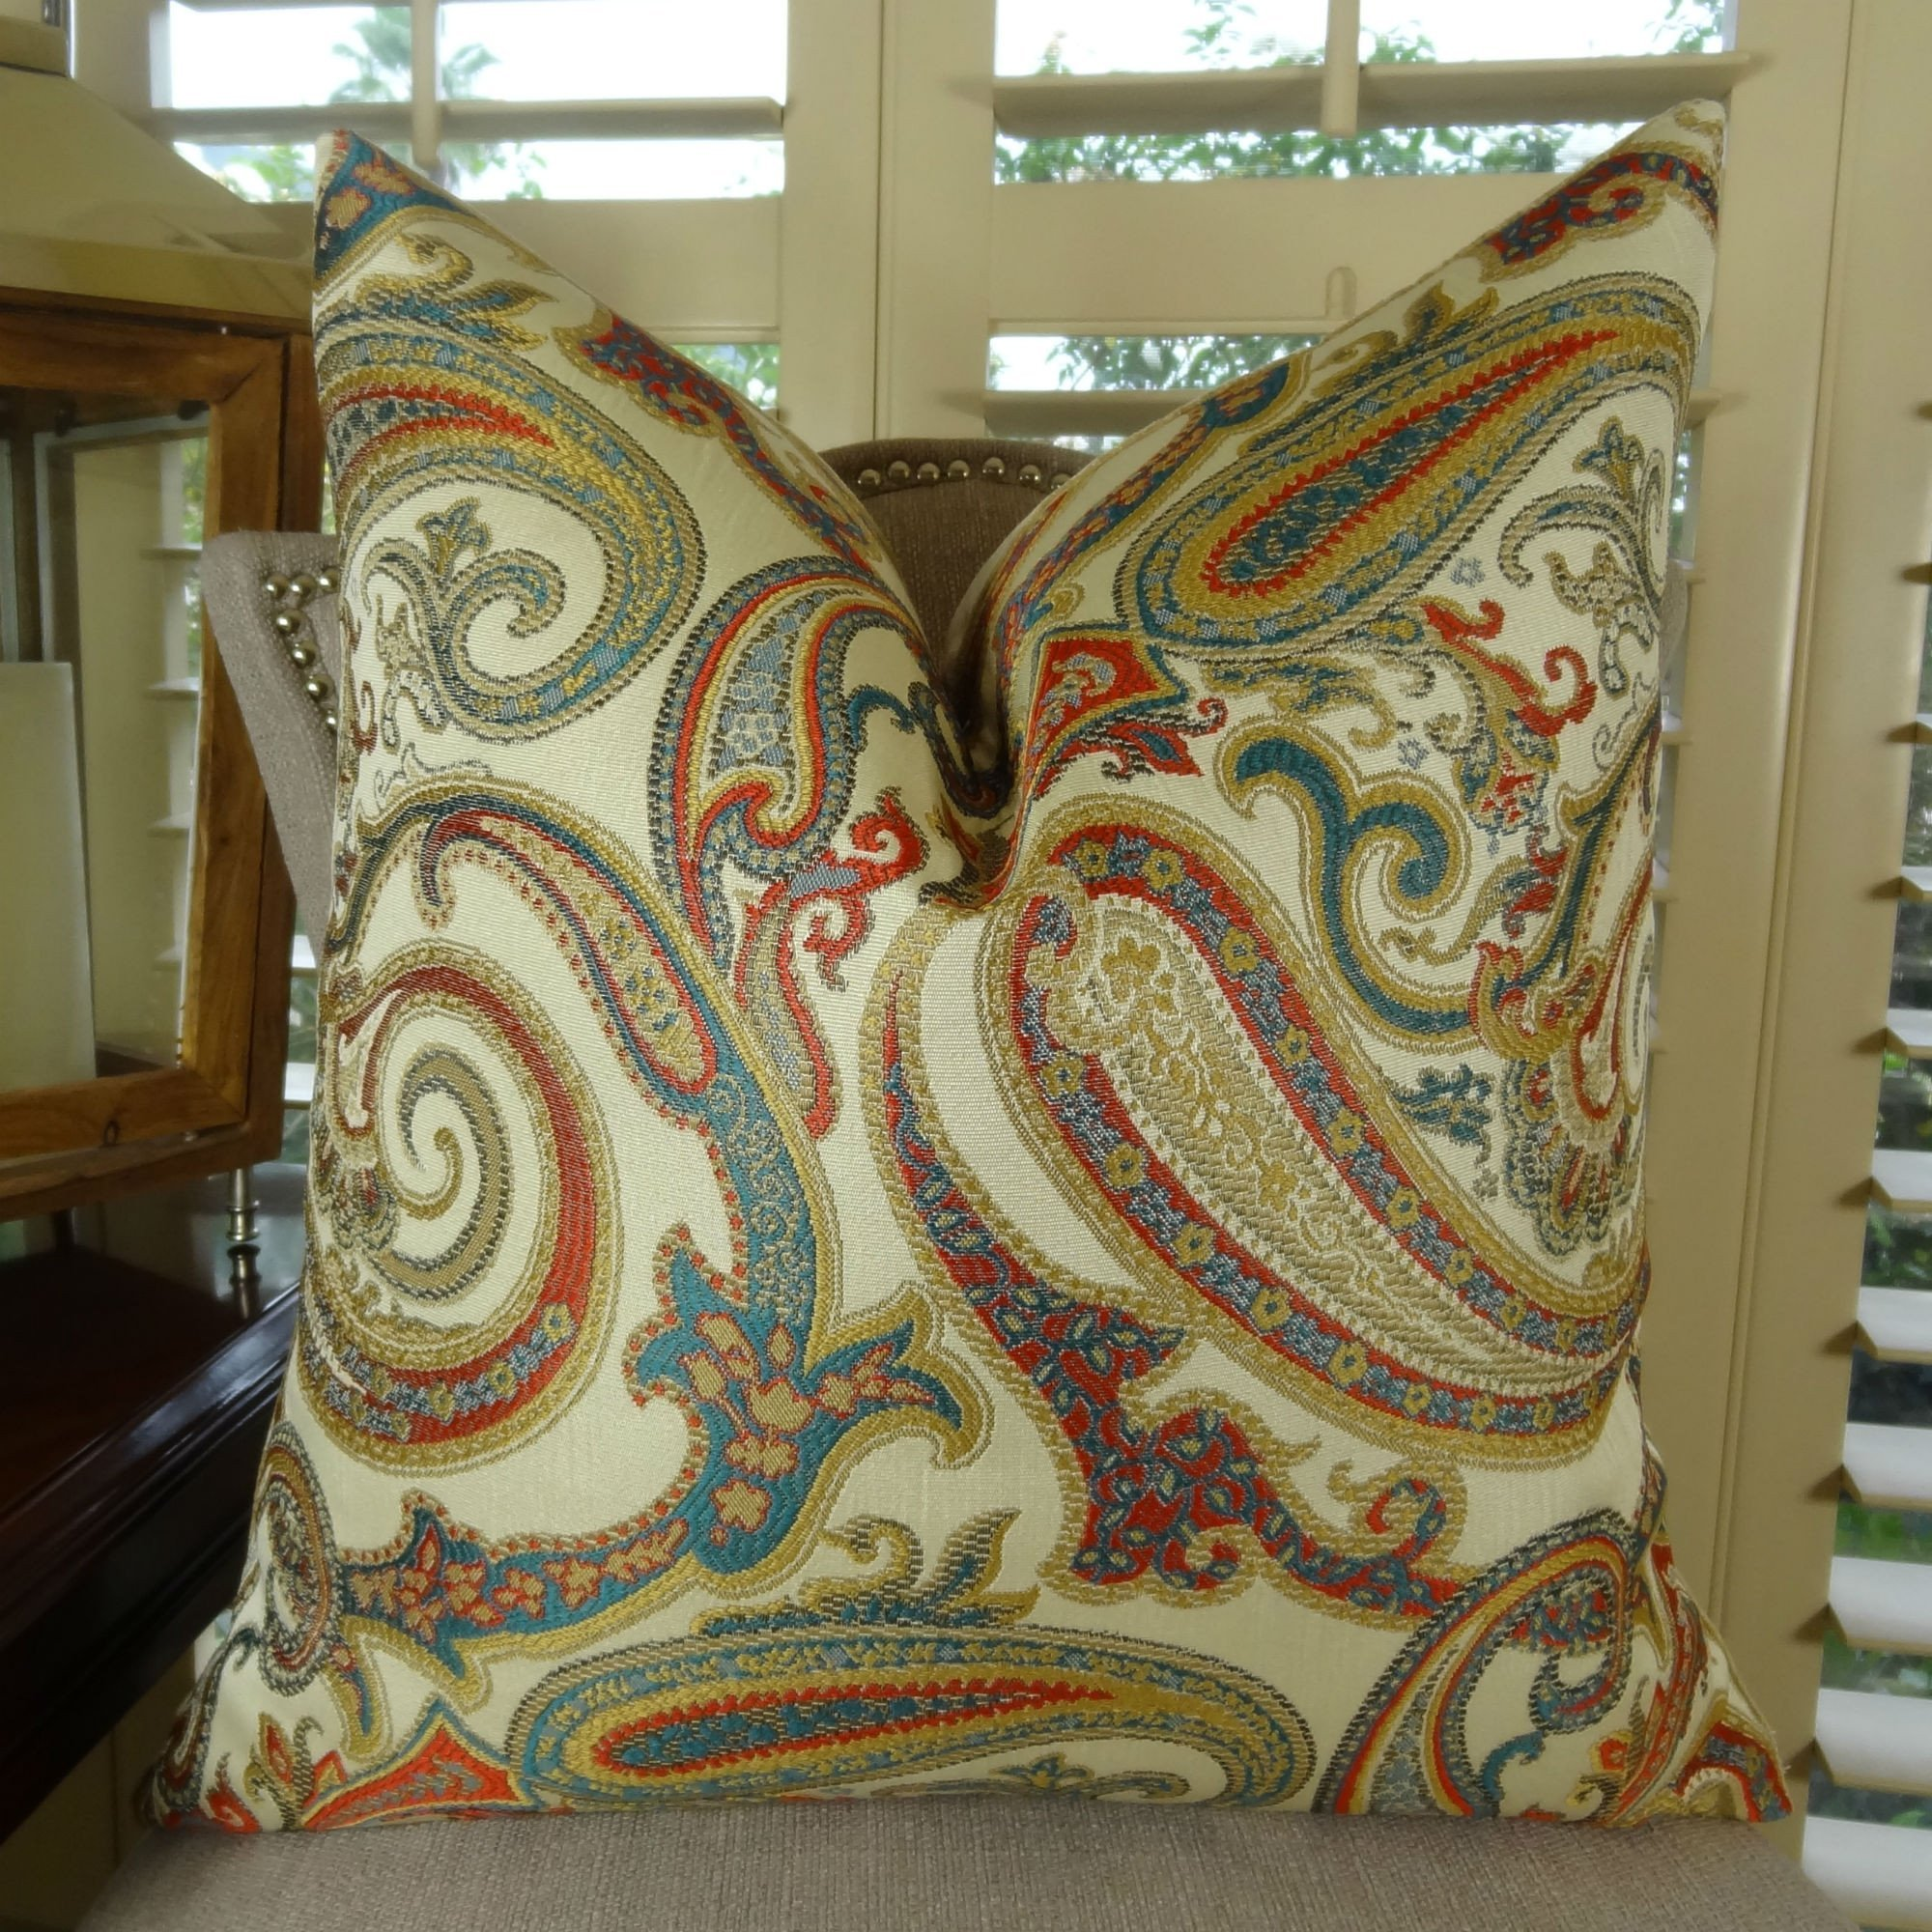 Thomas Collection Luxury Decorative Throw Pillow, Turquoise Red Cream Taupe Blue Paisley Floral Pillow, Red Paisley Pattern Pillow, COVER ONLY, NO INSERT, Made in America, 11064